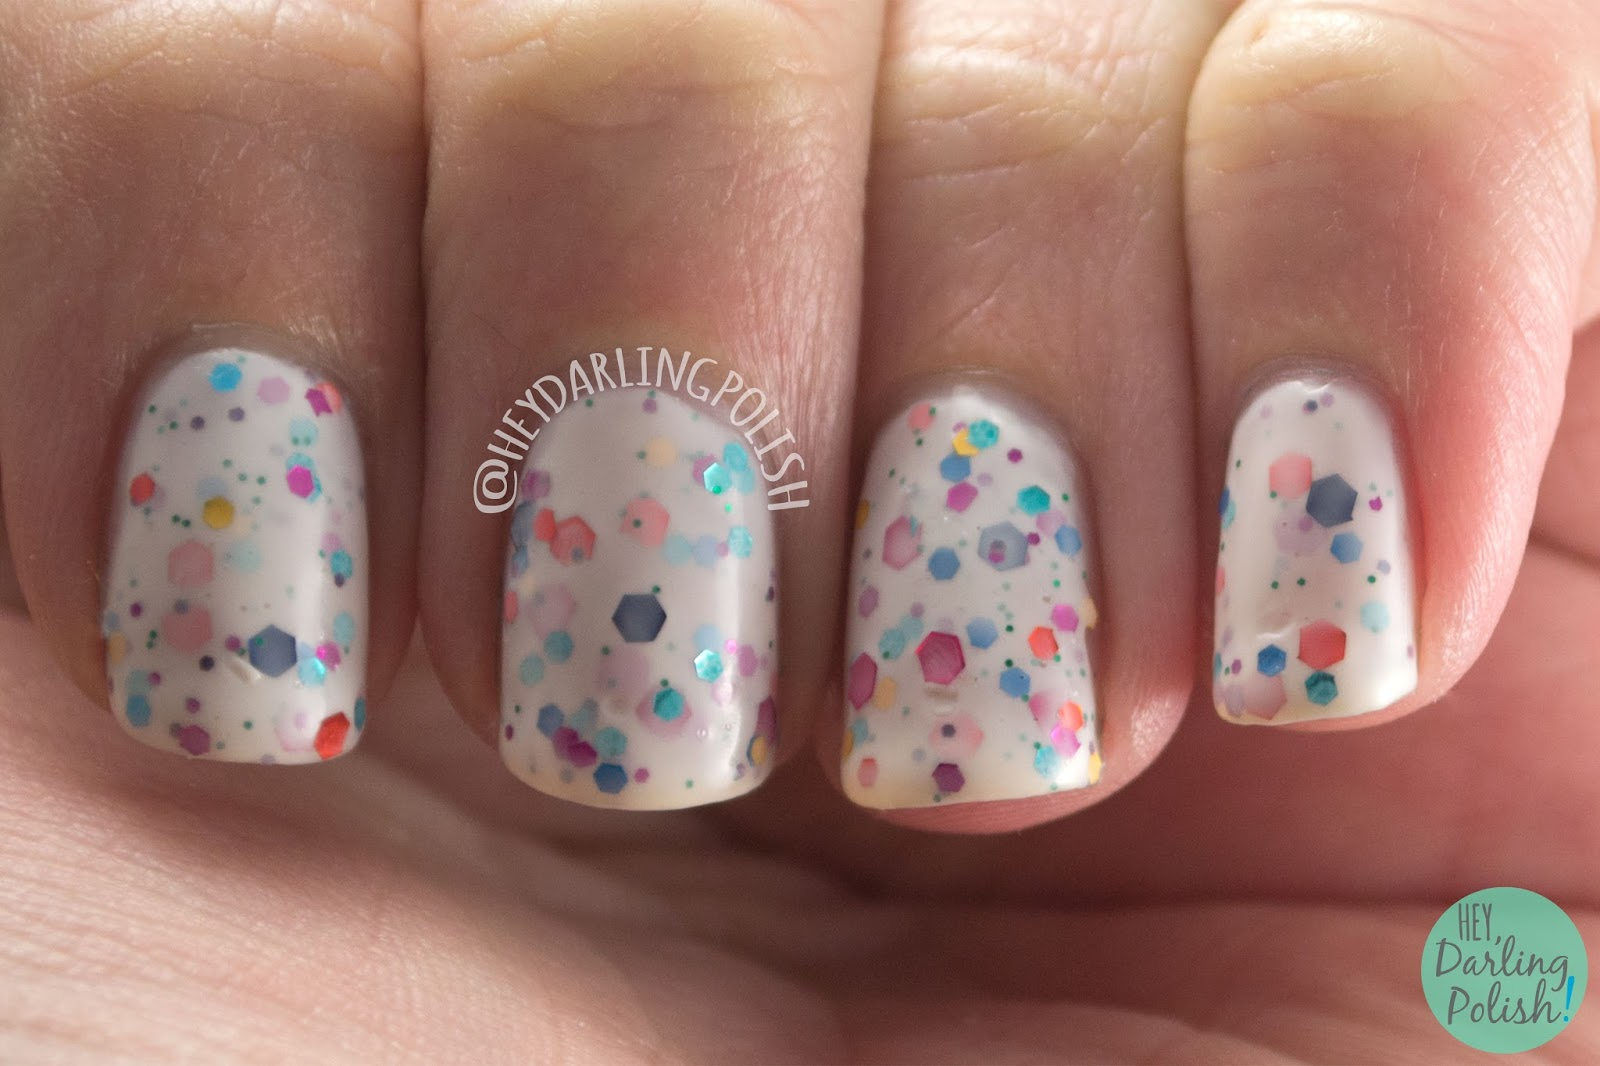 swatch, full bloom ahead, kbshimmer, hey darling polish, nails, nail polish, indie, indie polish, indie nail polish, glitter crelly, glitter,